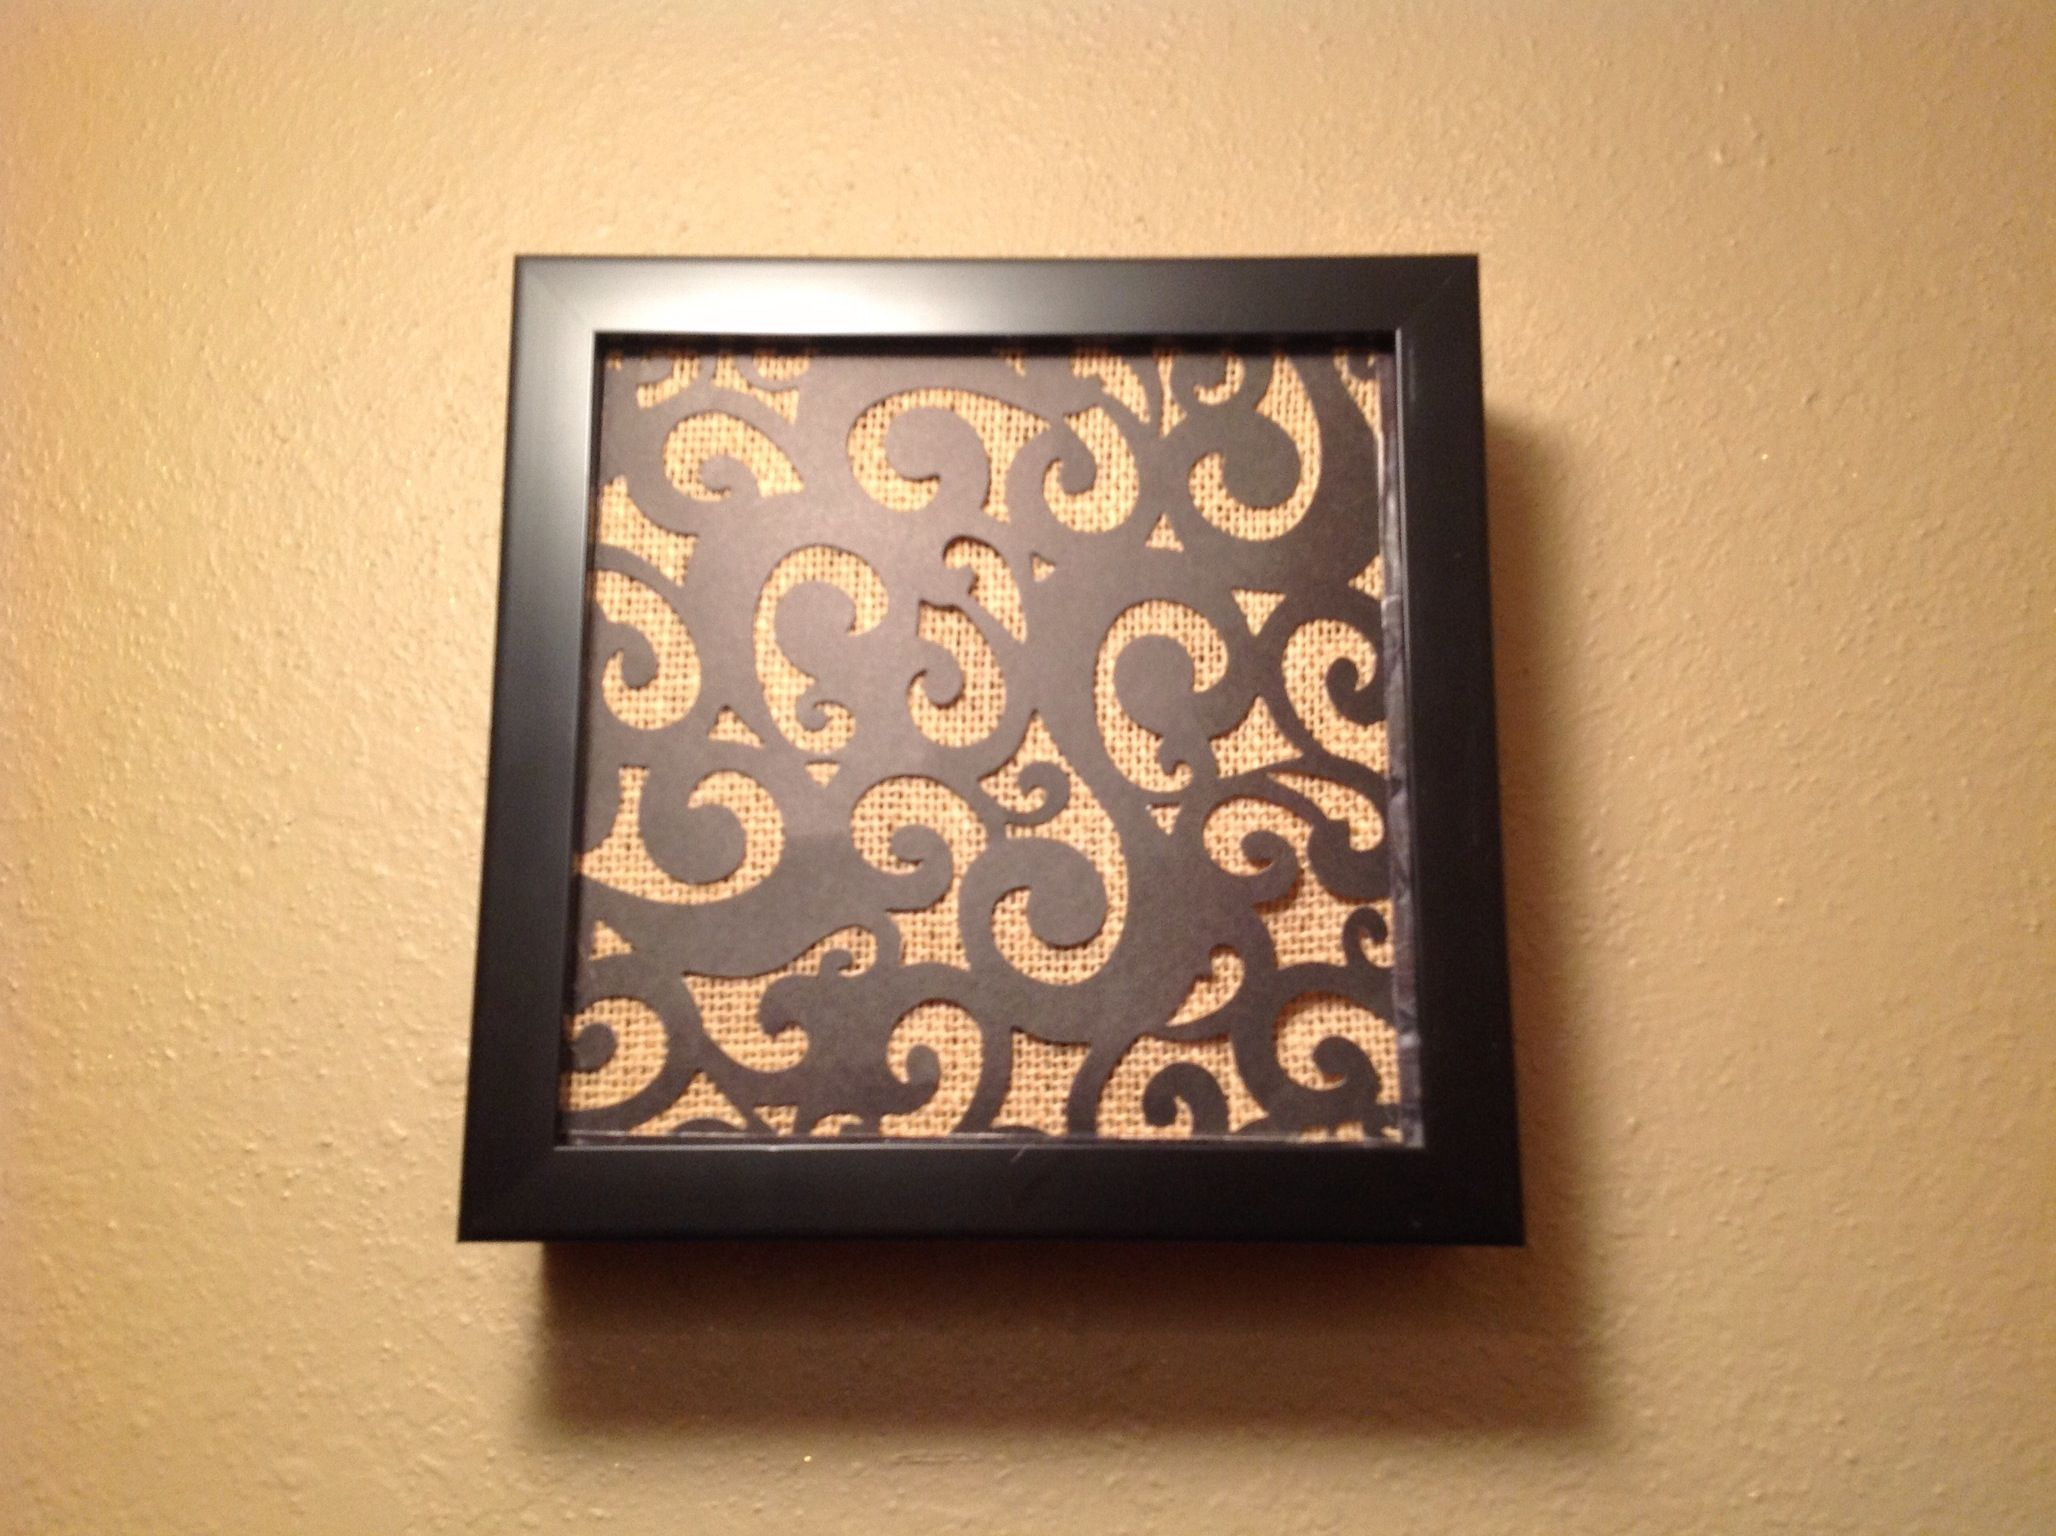 Most Current Belle Circular Scroll Wall Decor With Regard To Door Bell Chime Cover Made From Shadow Box, Burlap And Black Scroll (View 13 of 20)